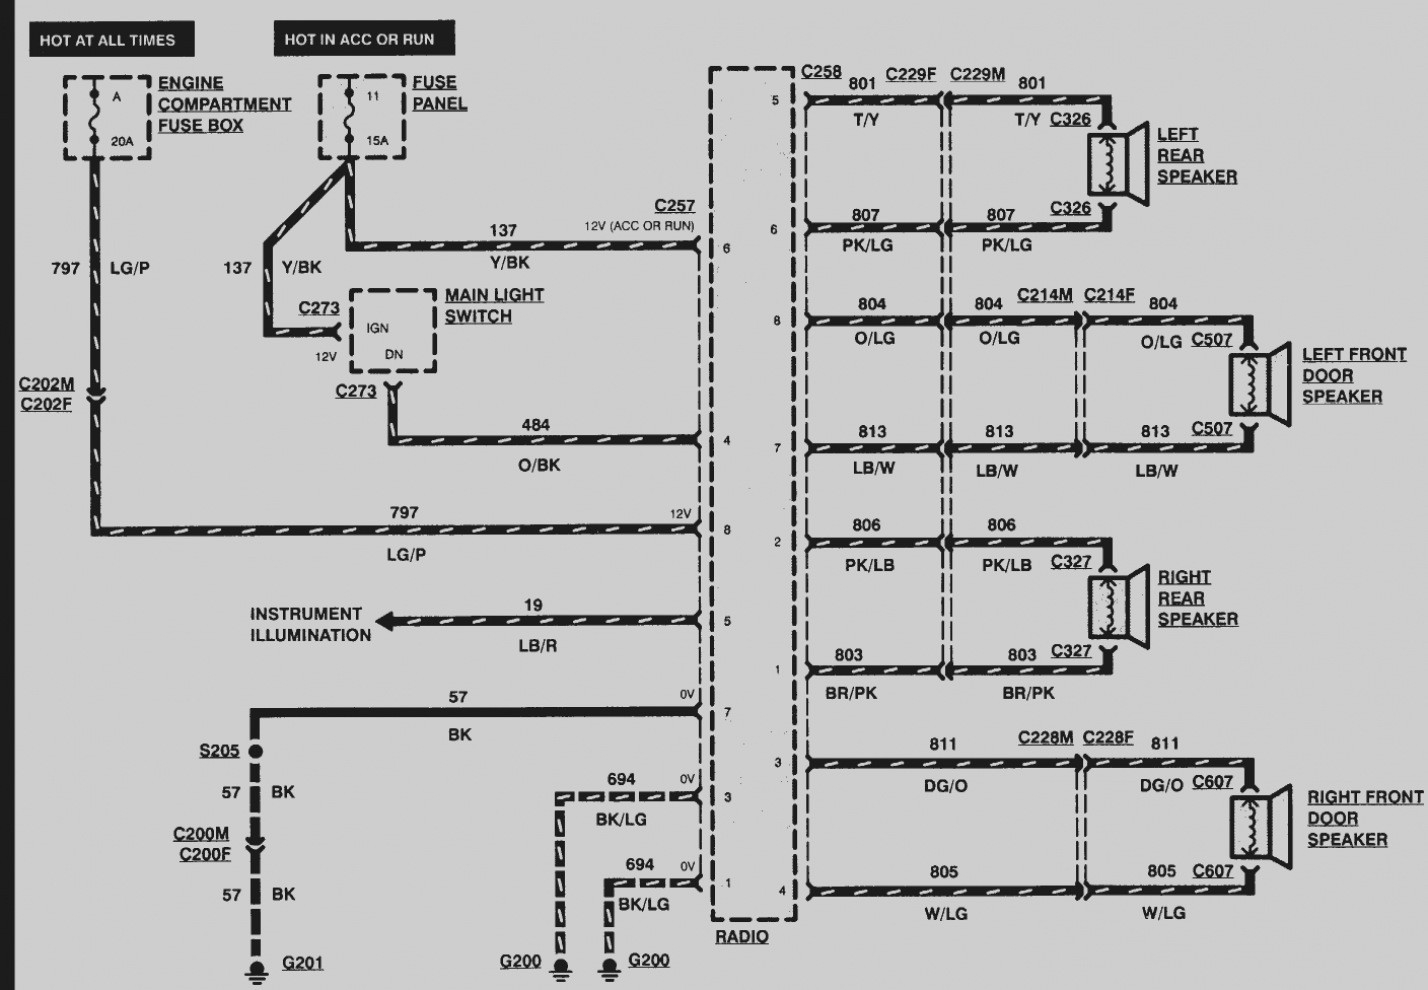 Diagram 1999 Mercury Mountaineer Radio Wiring Diagram Full Version Hd Quality Wiring Diagram Pvdiagramxkarin Cuartetango It